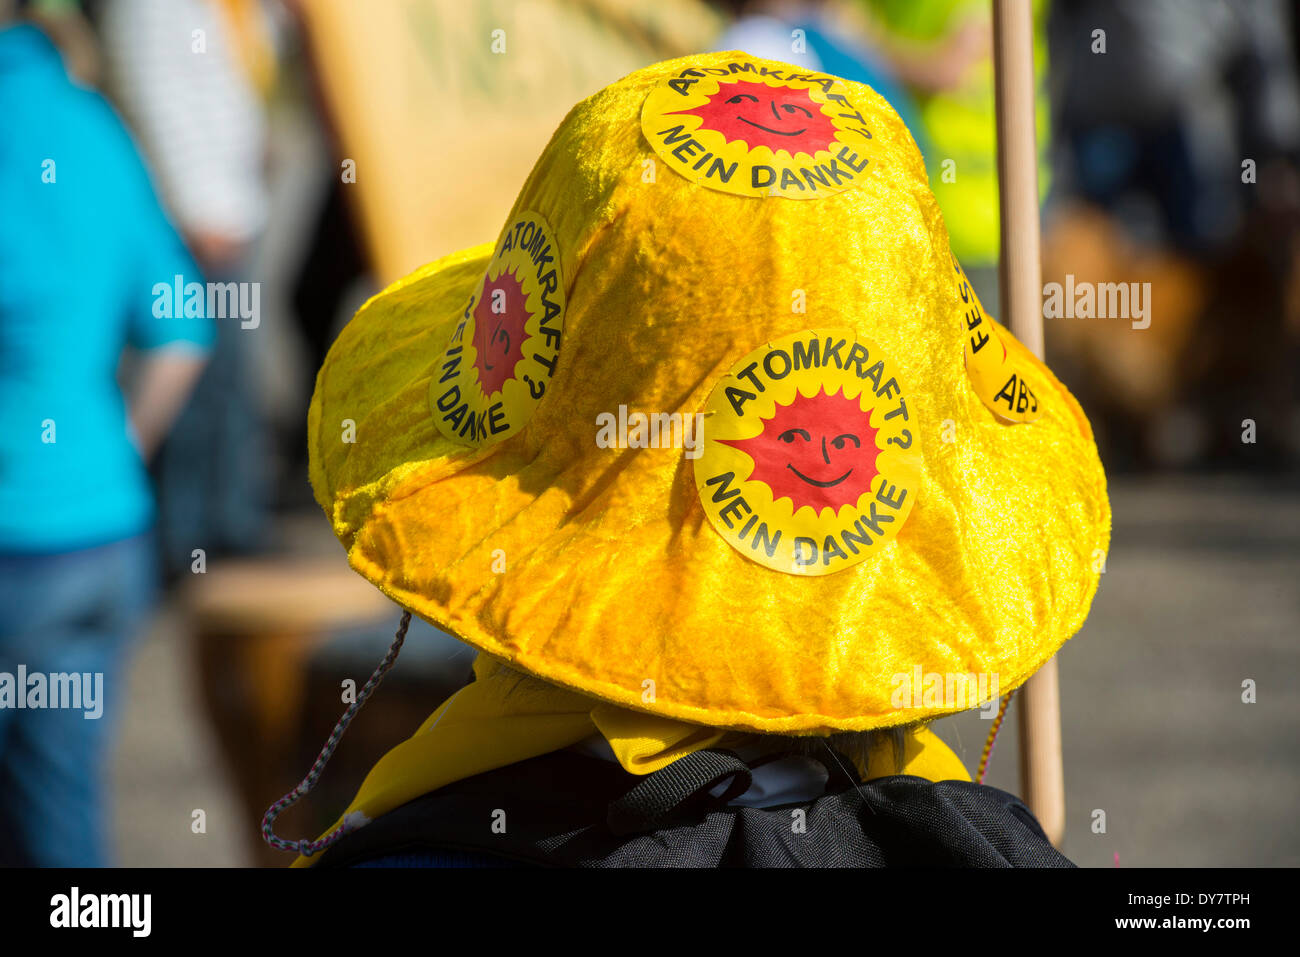 Anti-nuclear demonstration on the 3rd anniversary of the Fukushima nuclear disaster, at Fessenheim nuclear power plant - Stock Image